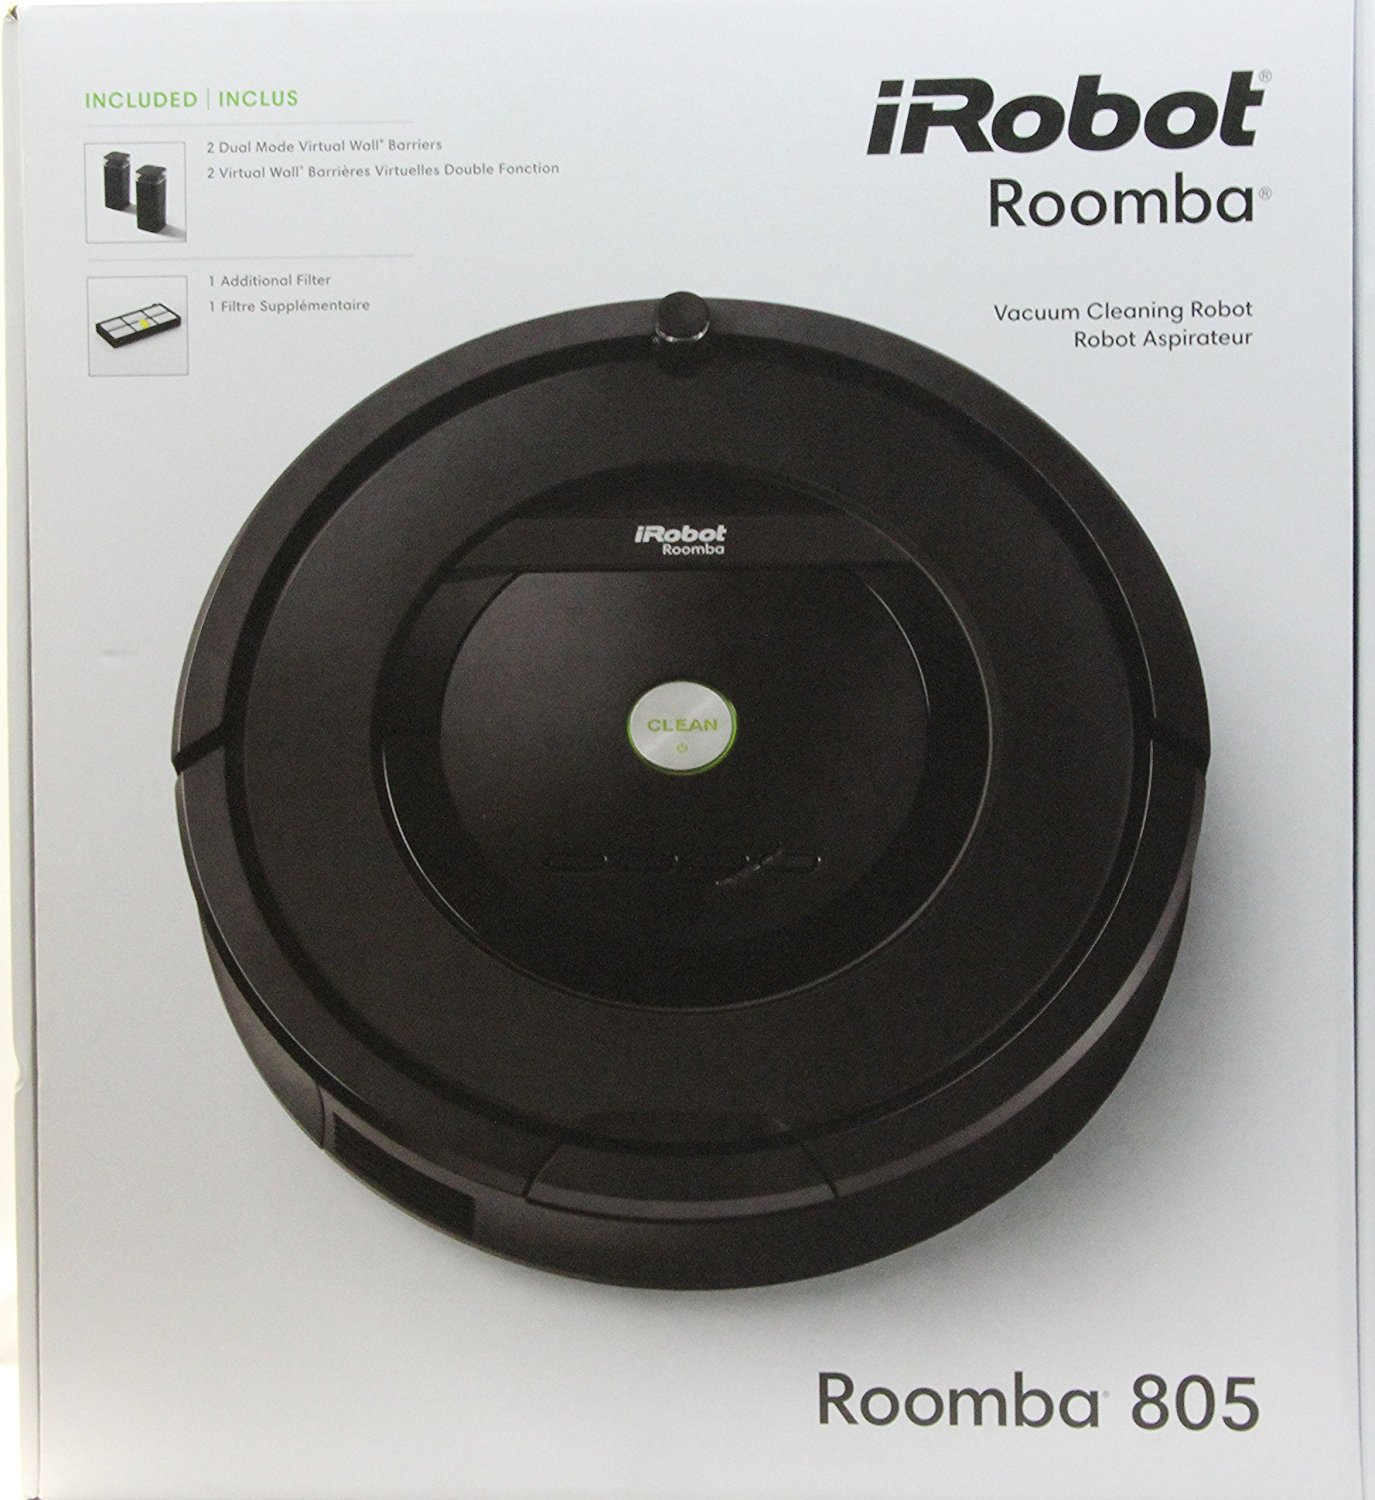 Roomba 805 Vacuum Cleaner Review